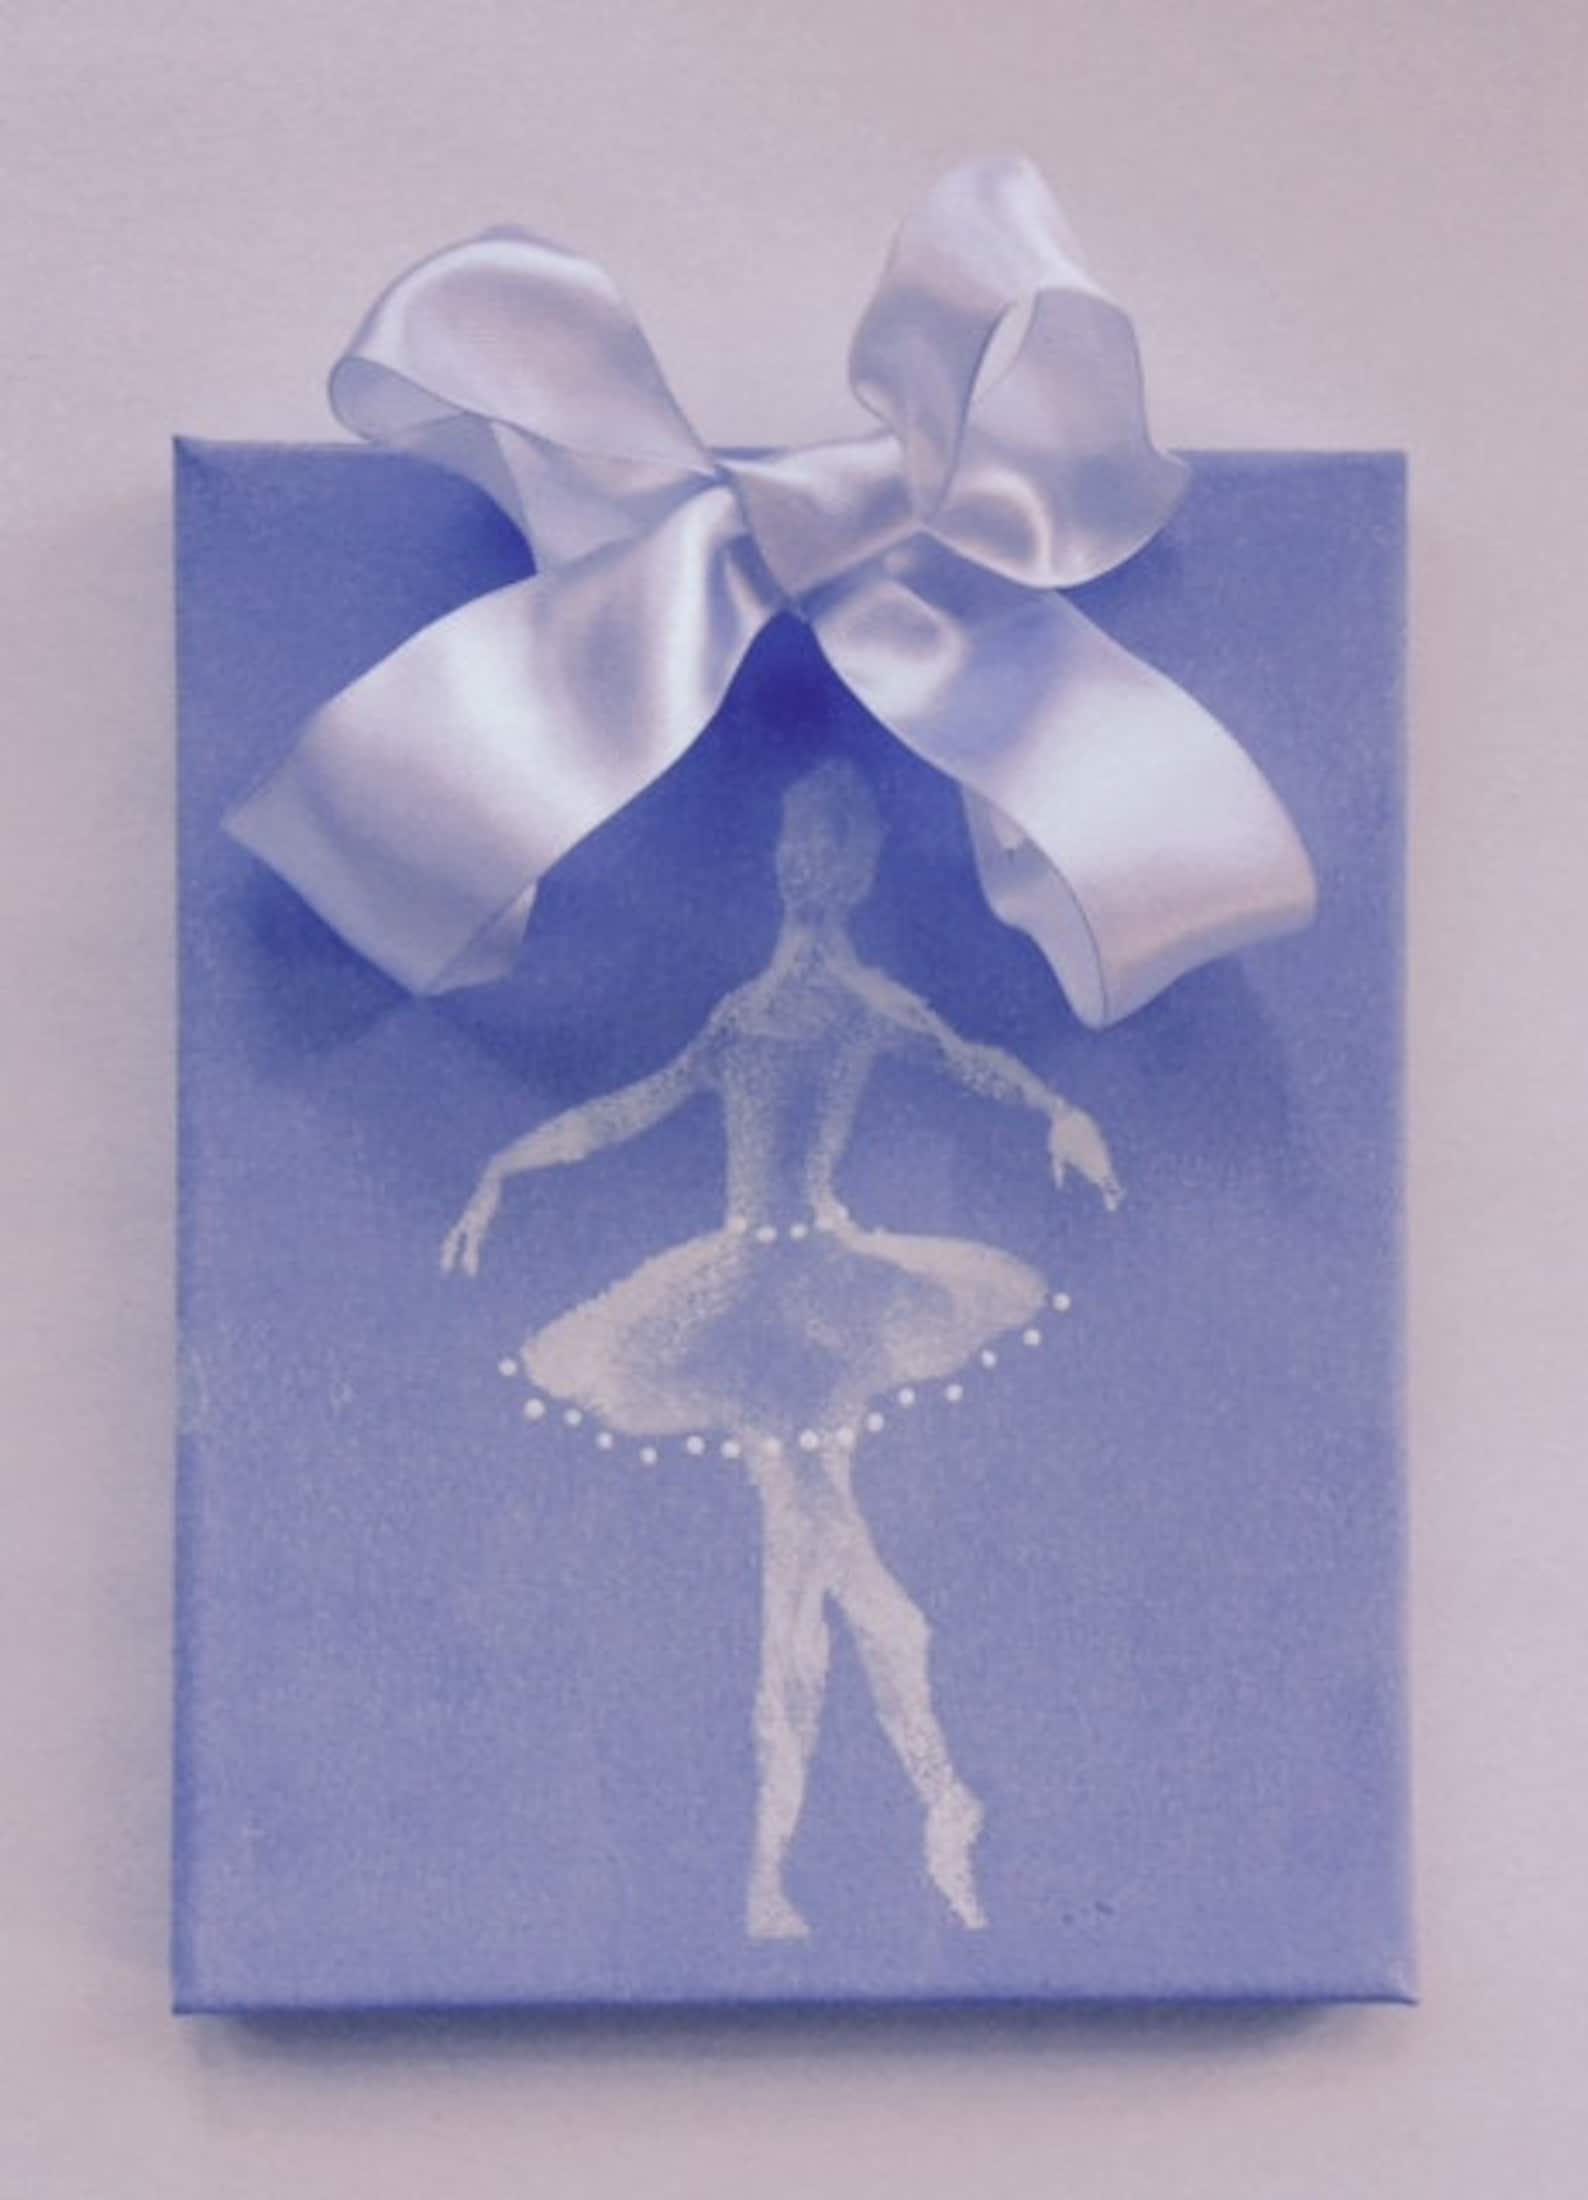 ballet art, dancer art, ballerina wall art, kids rooms, childrens wall art, original canvas art, girls rooms ideas, lavender gir